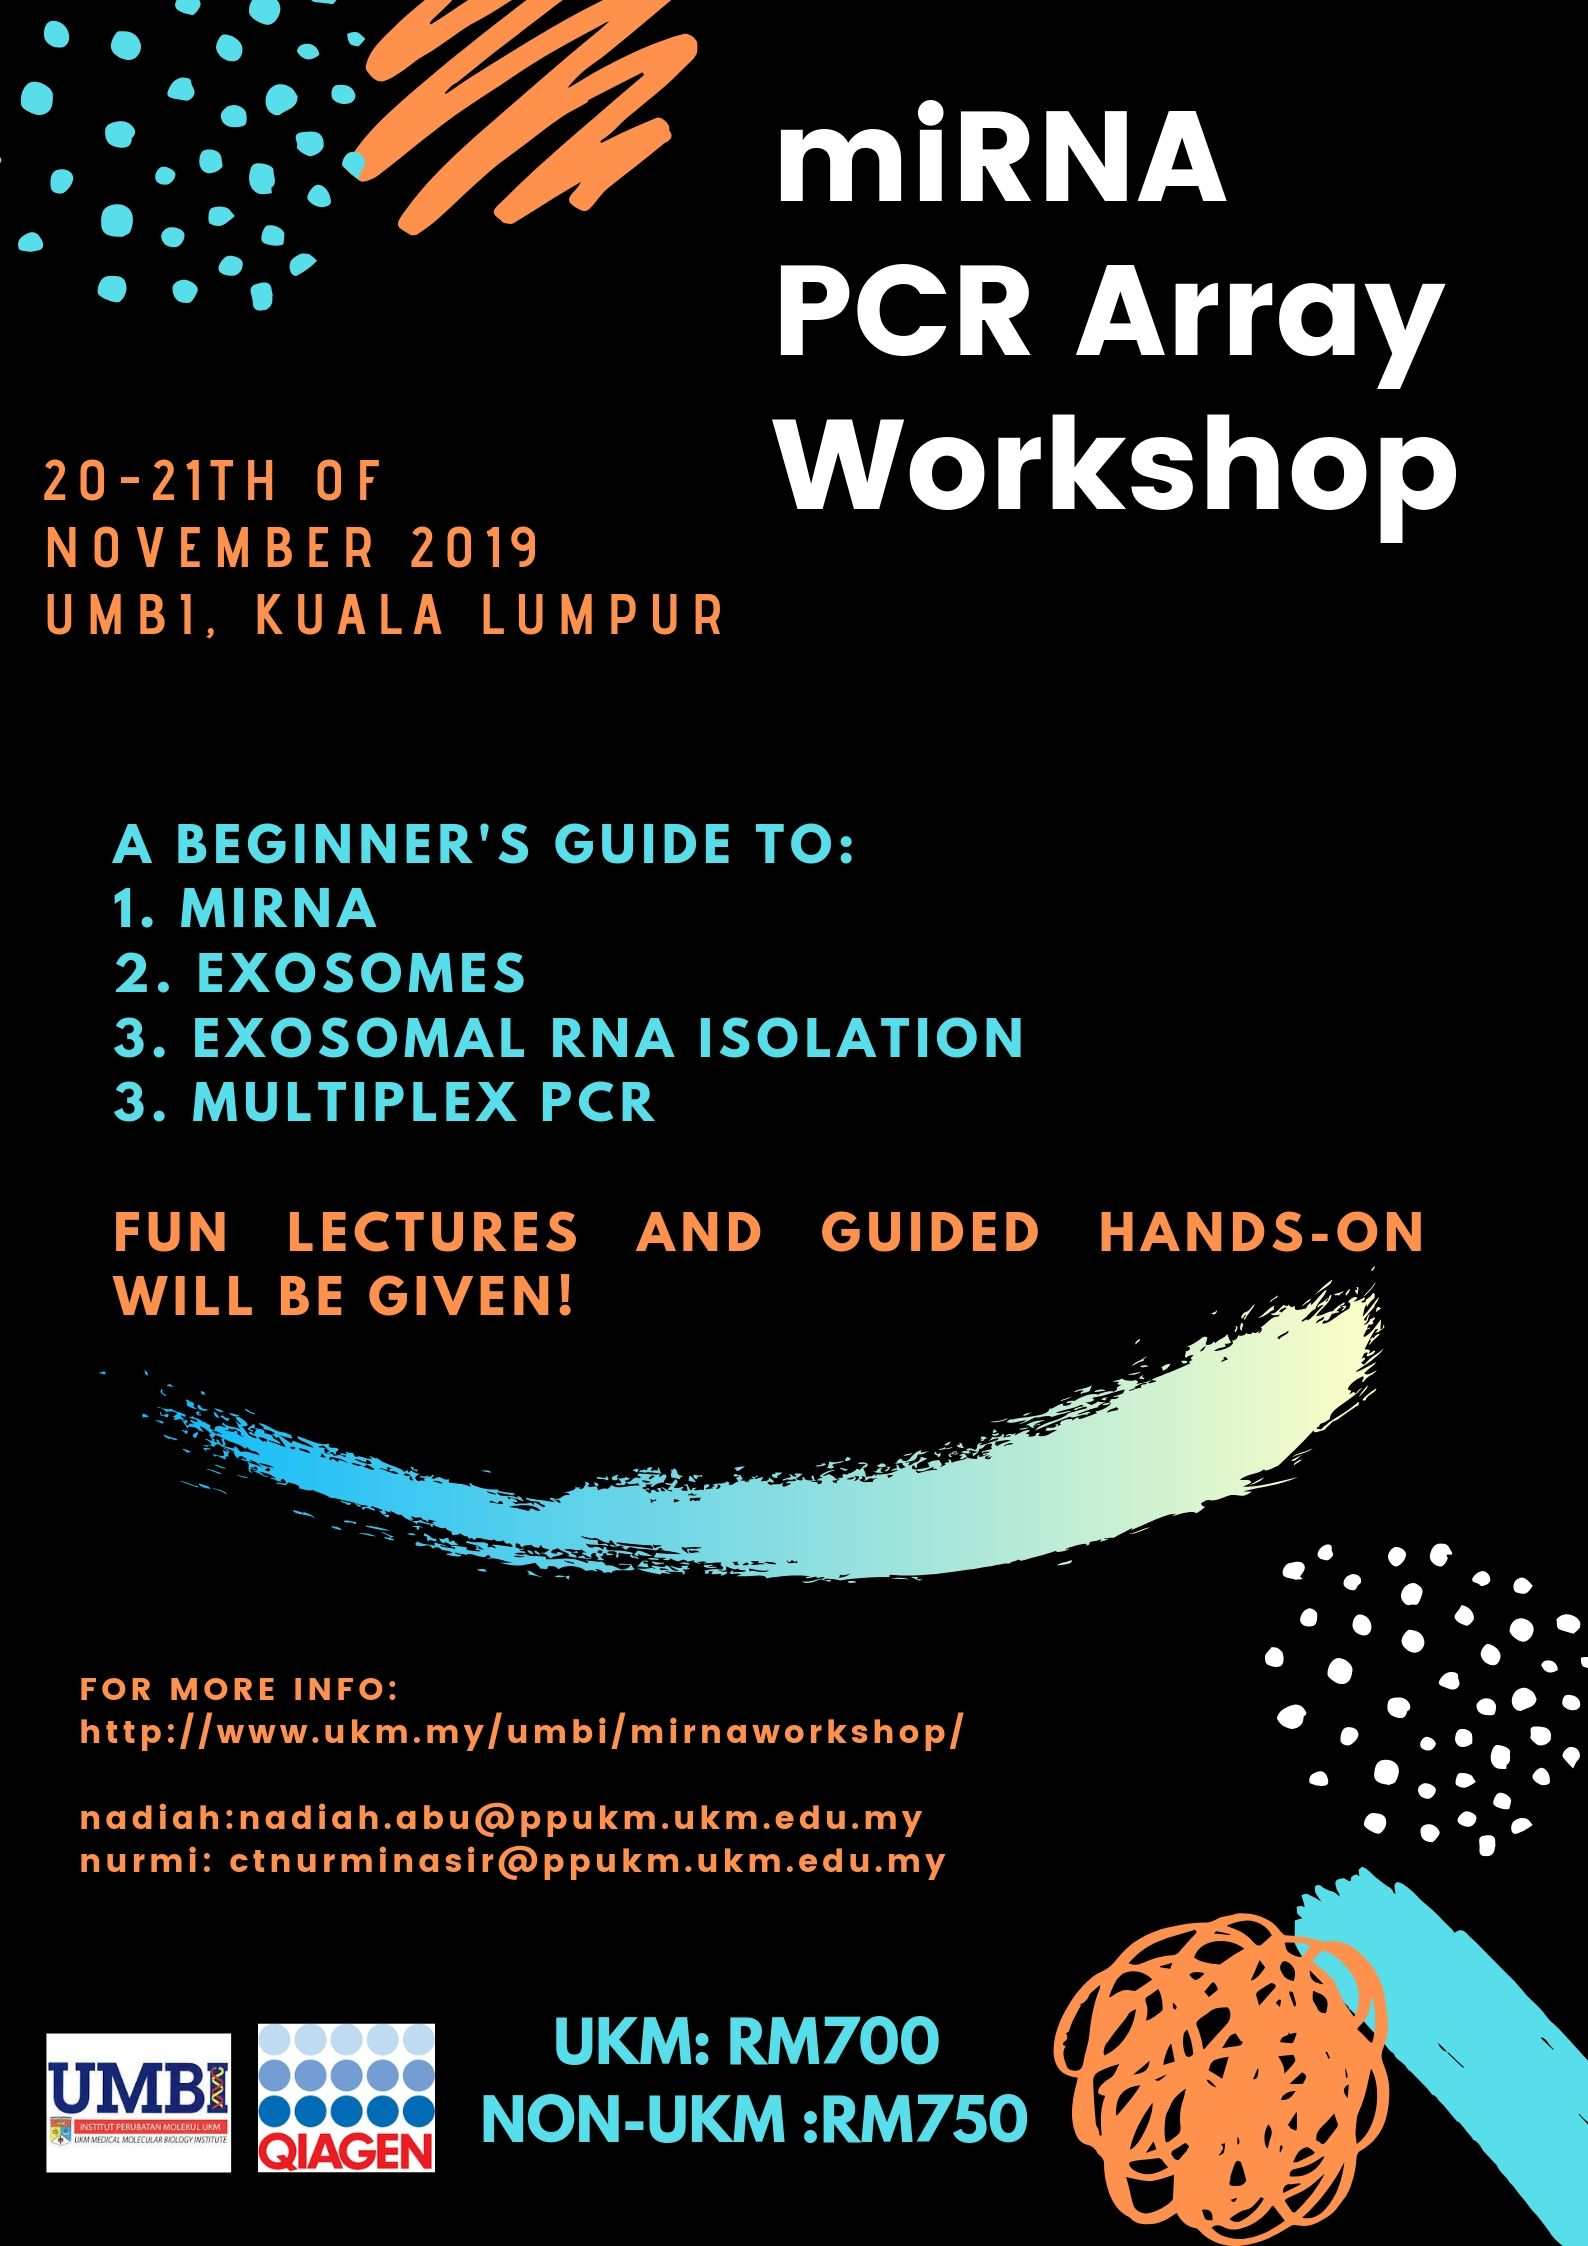 miRNA PCR Array Workshop – UKM Medical Molecular Biology